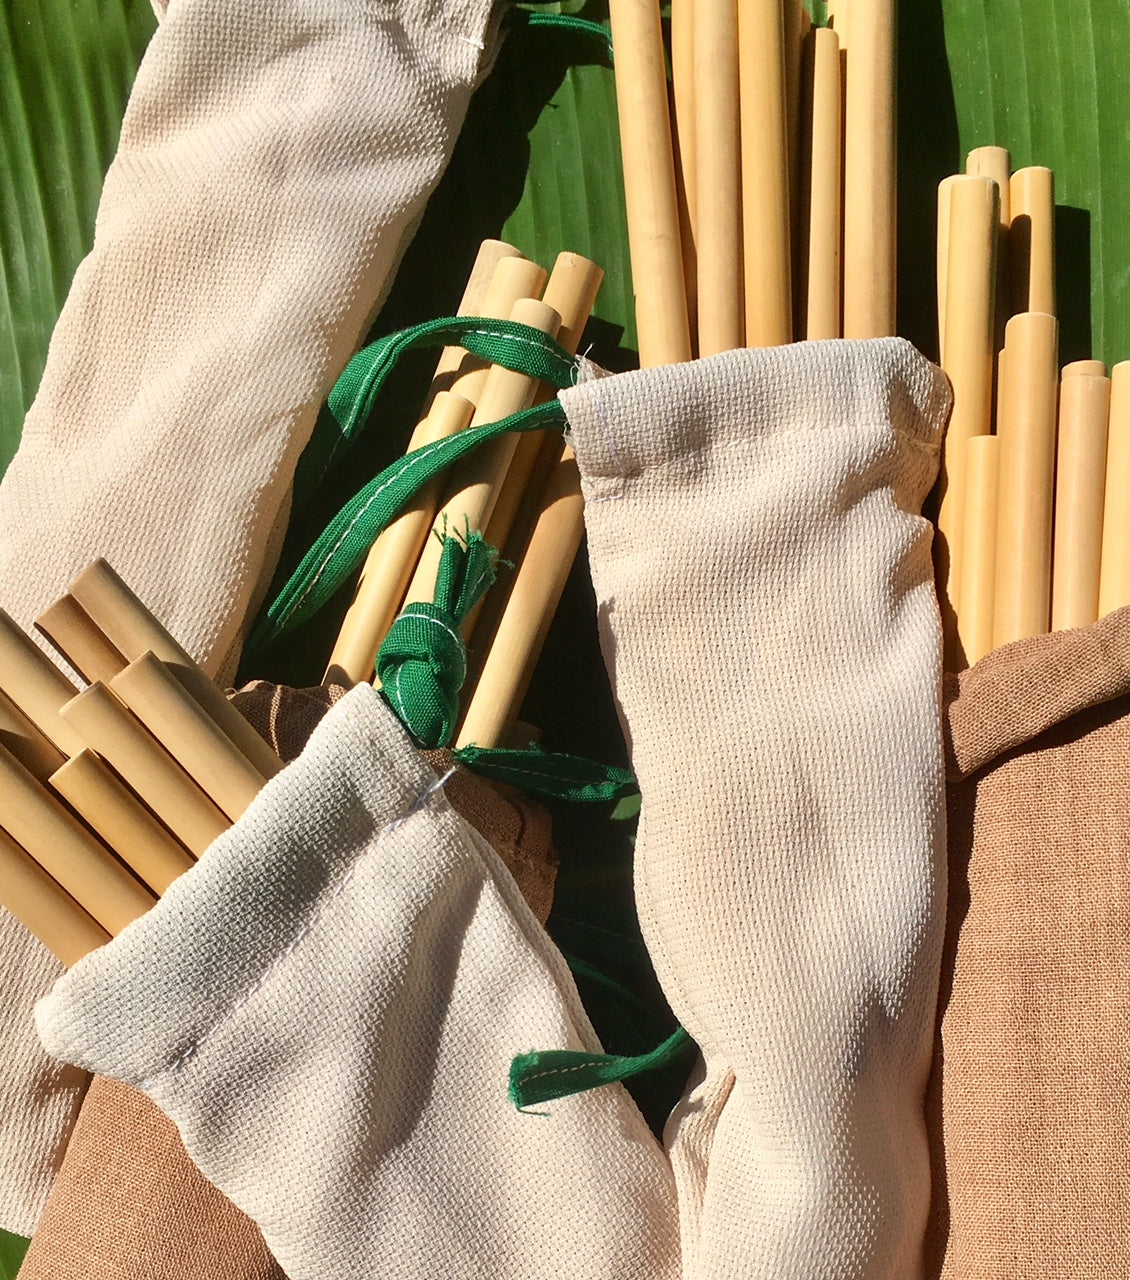 Organic All-Natural Bamboo Drinking Straws (Set of 100)